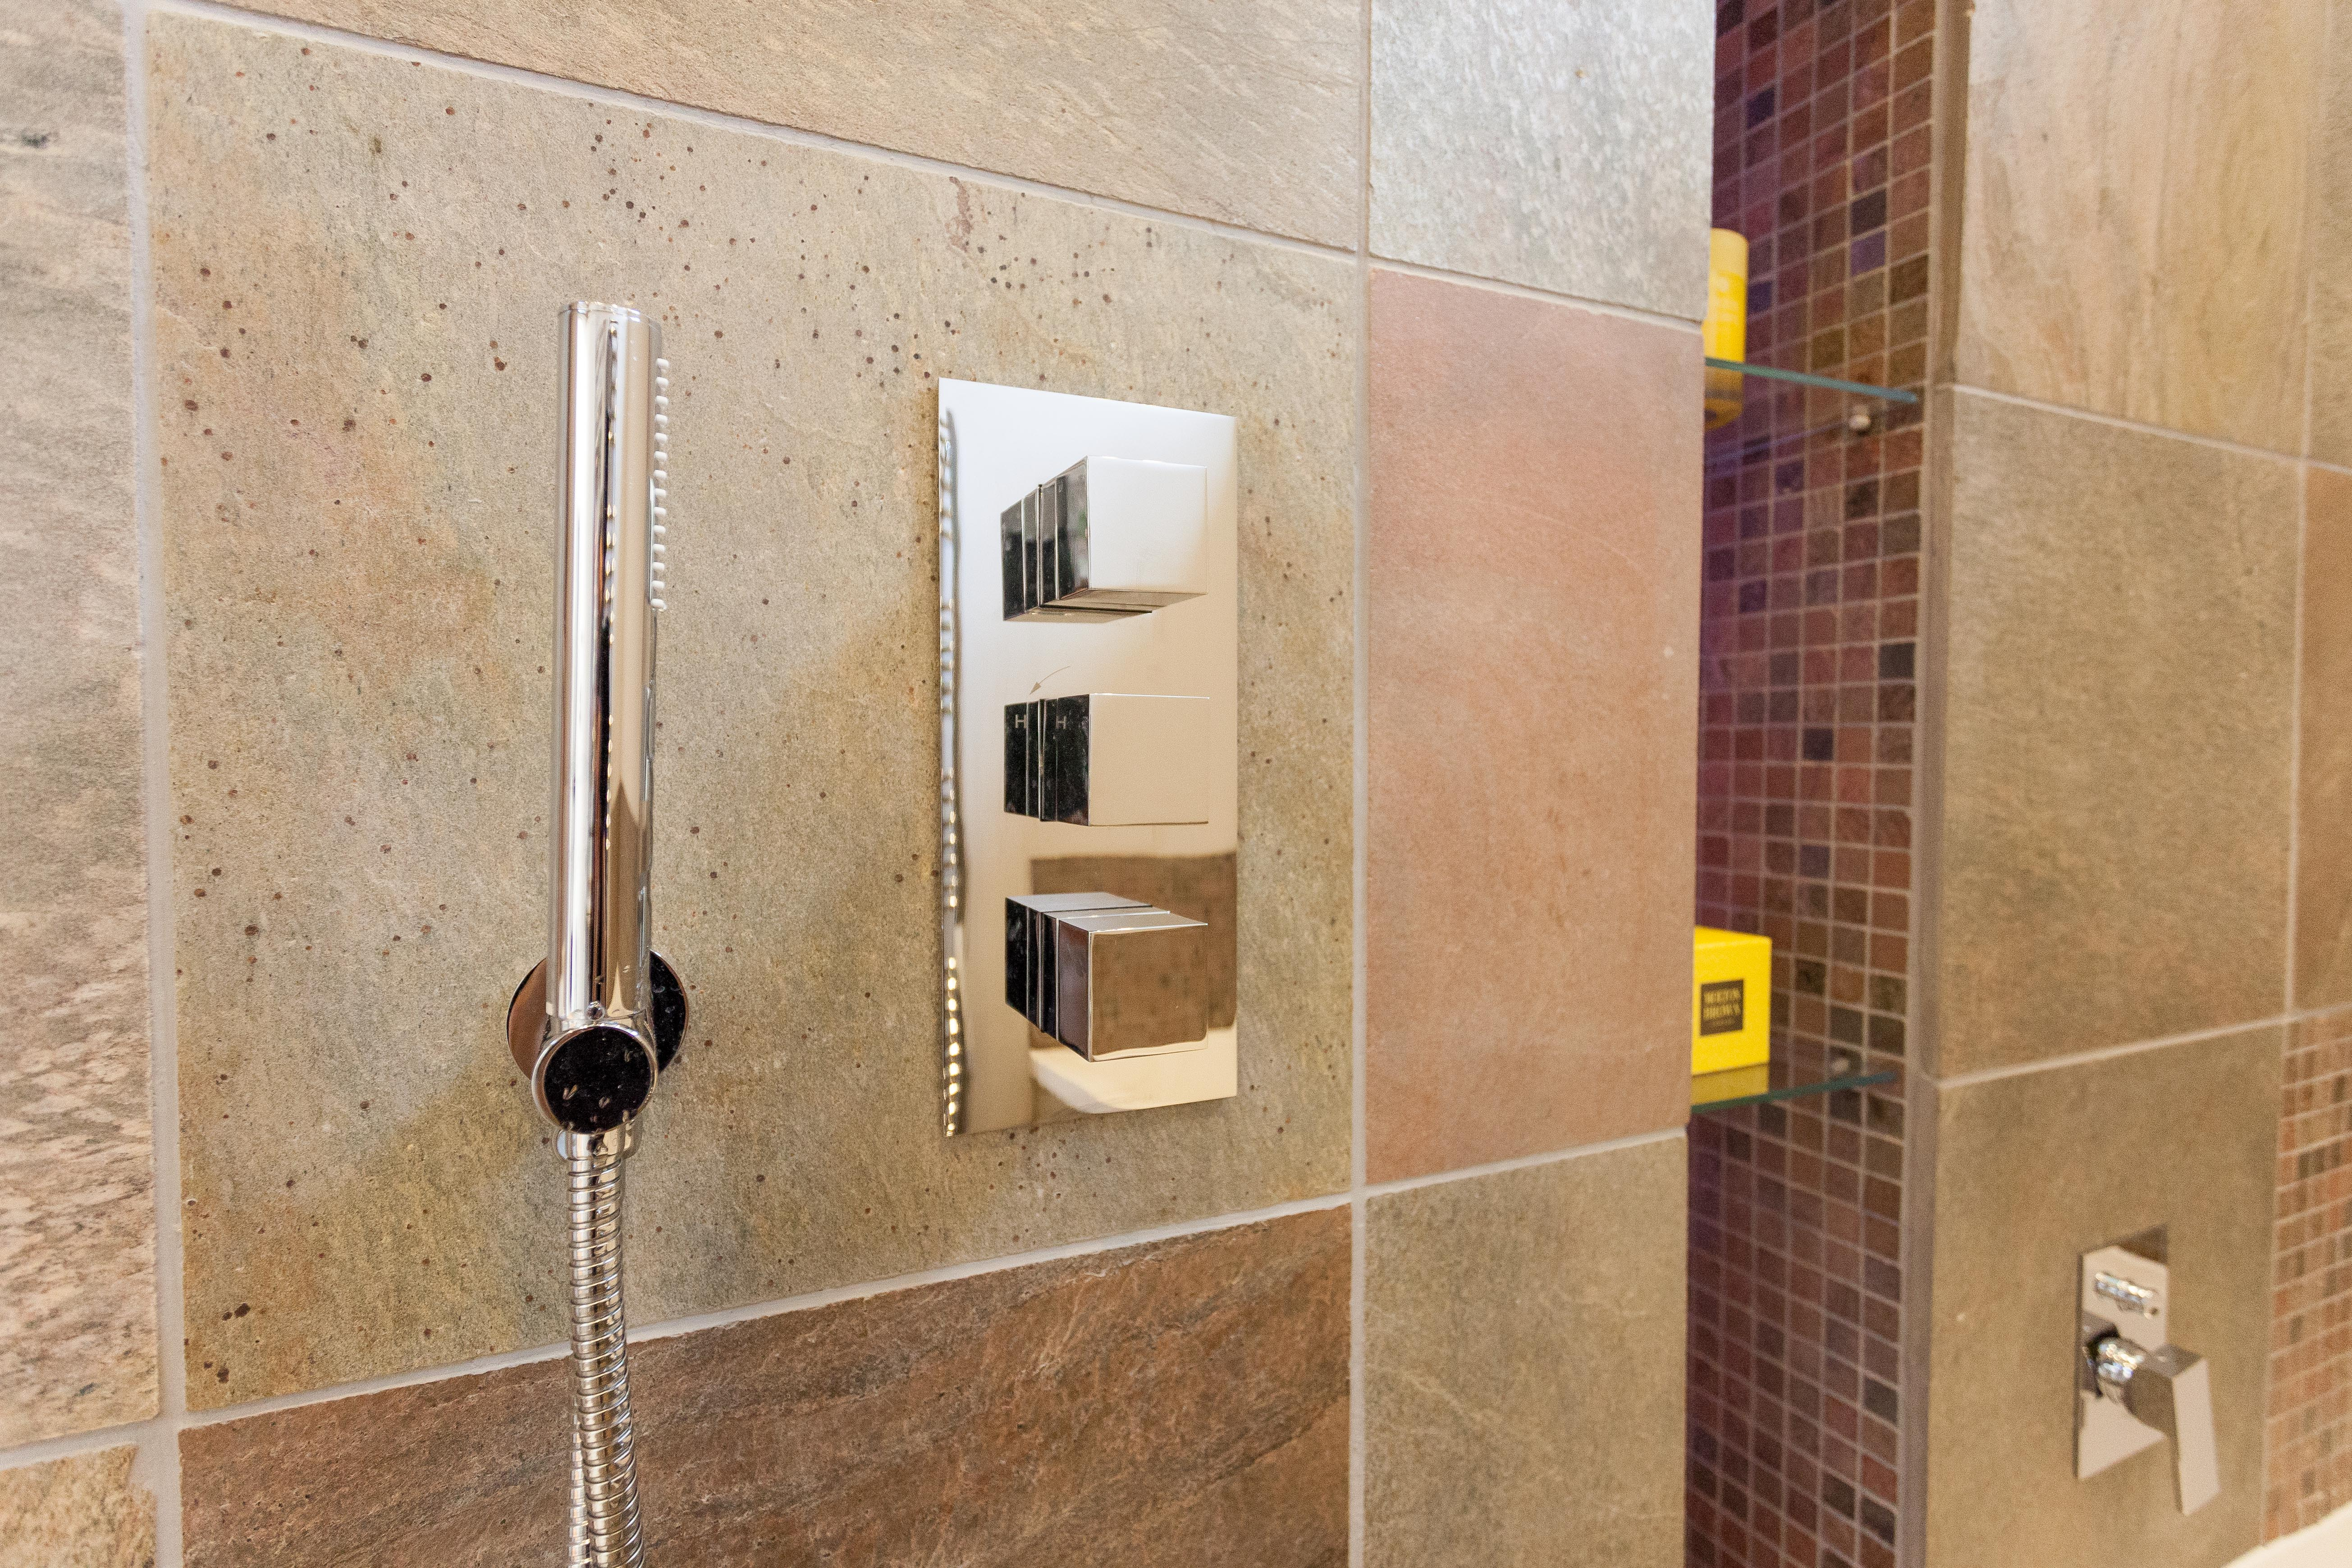 Stone tiles with chrome shower mixer.